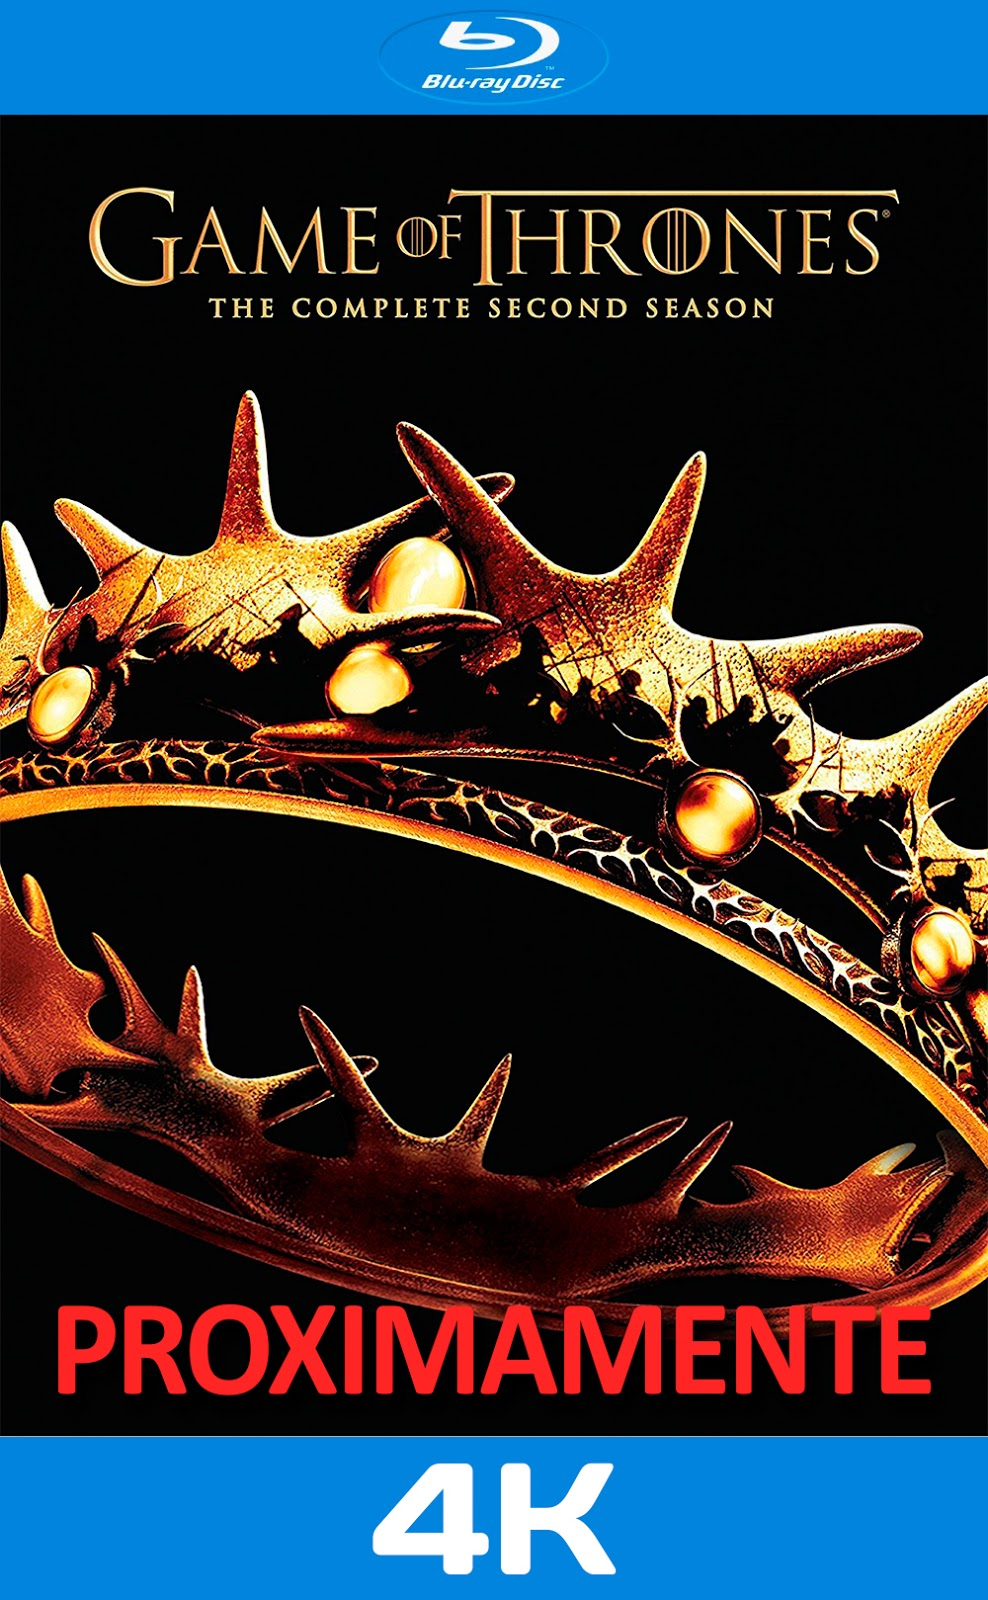 Game thrones 1080p Complete Bluray